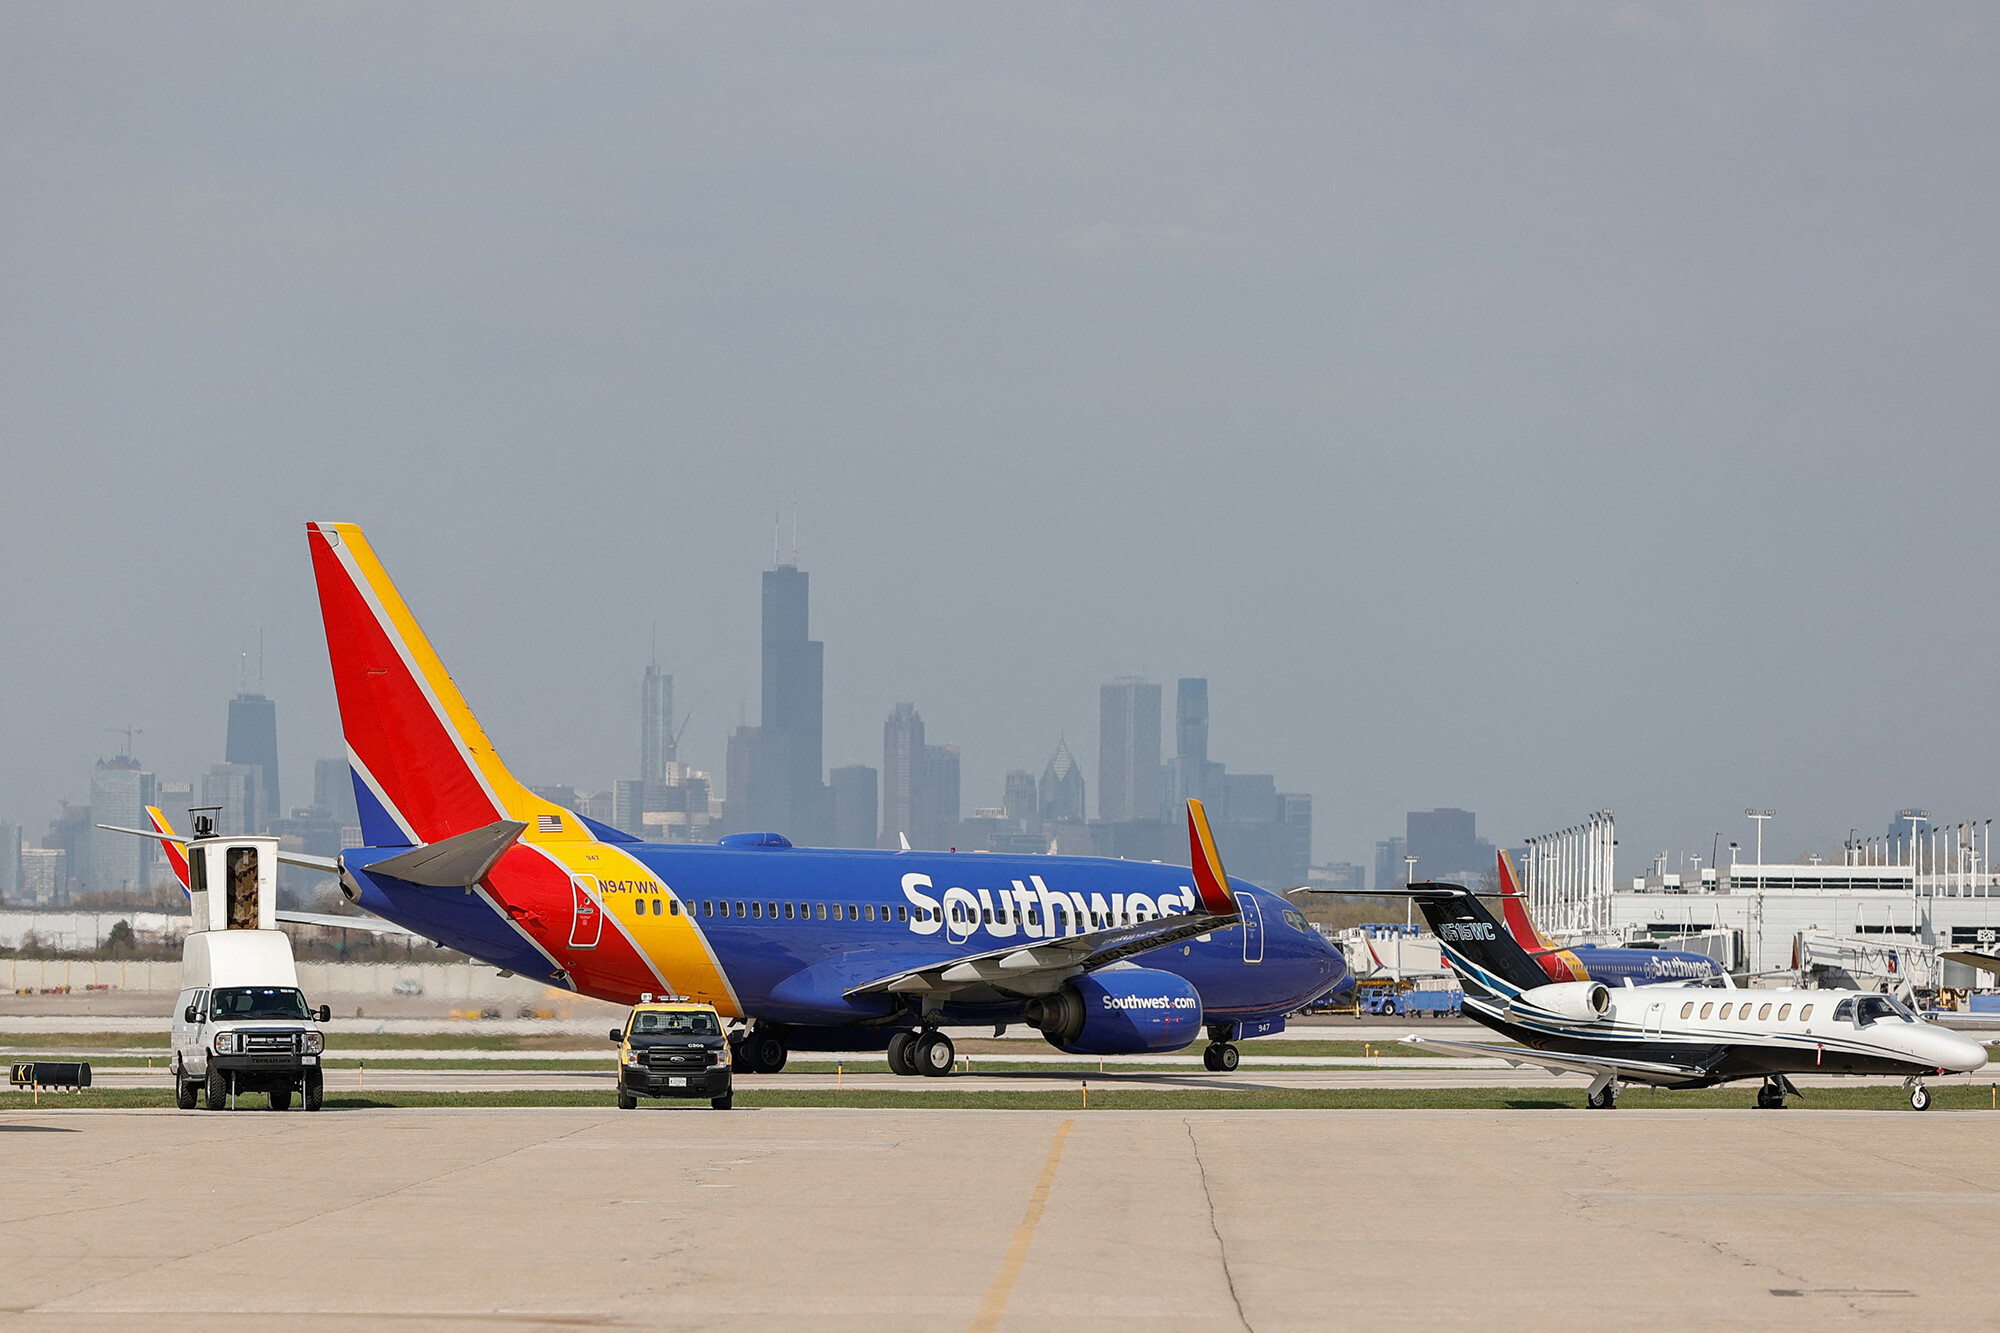 Flying on Southwest has been awful. The company has a fix: Fewer flights